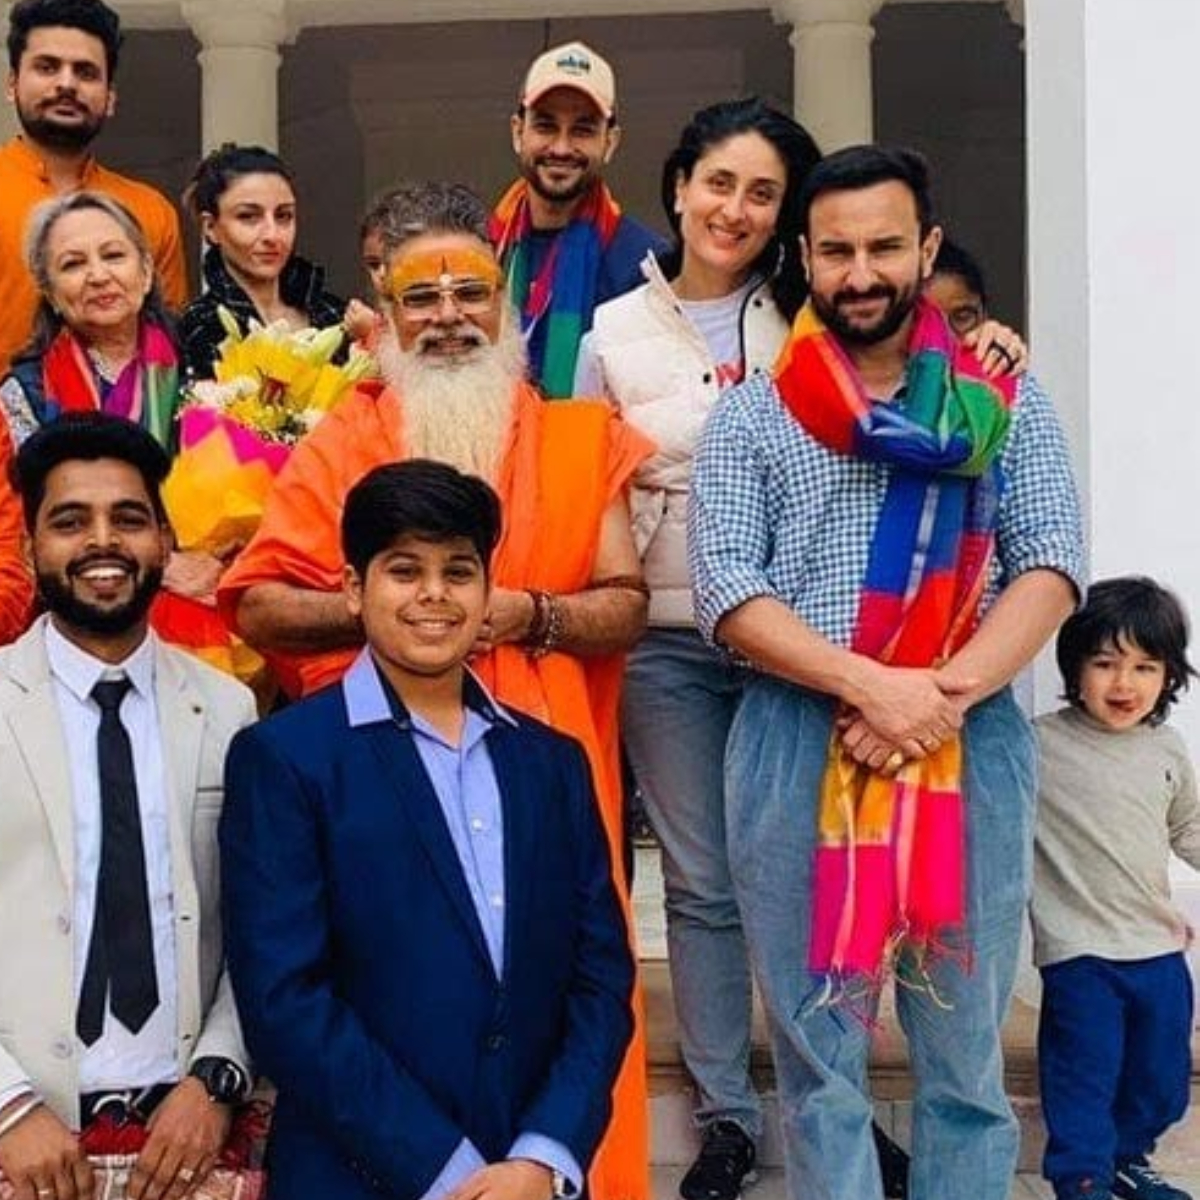 Taimur Ali Khan is the happiest kid as he poses for a family portrait at Pataudi Palace; View Pic